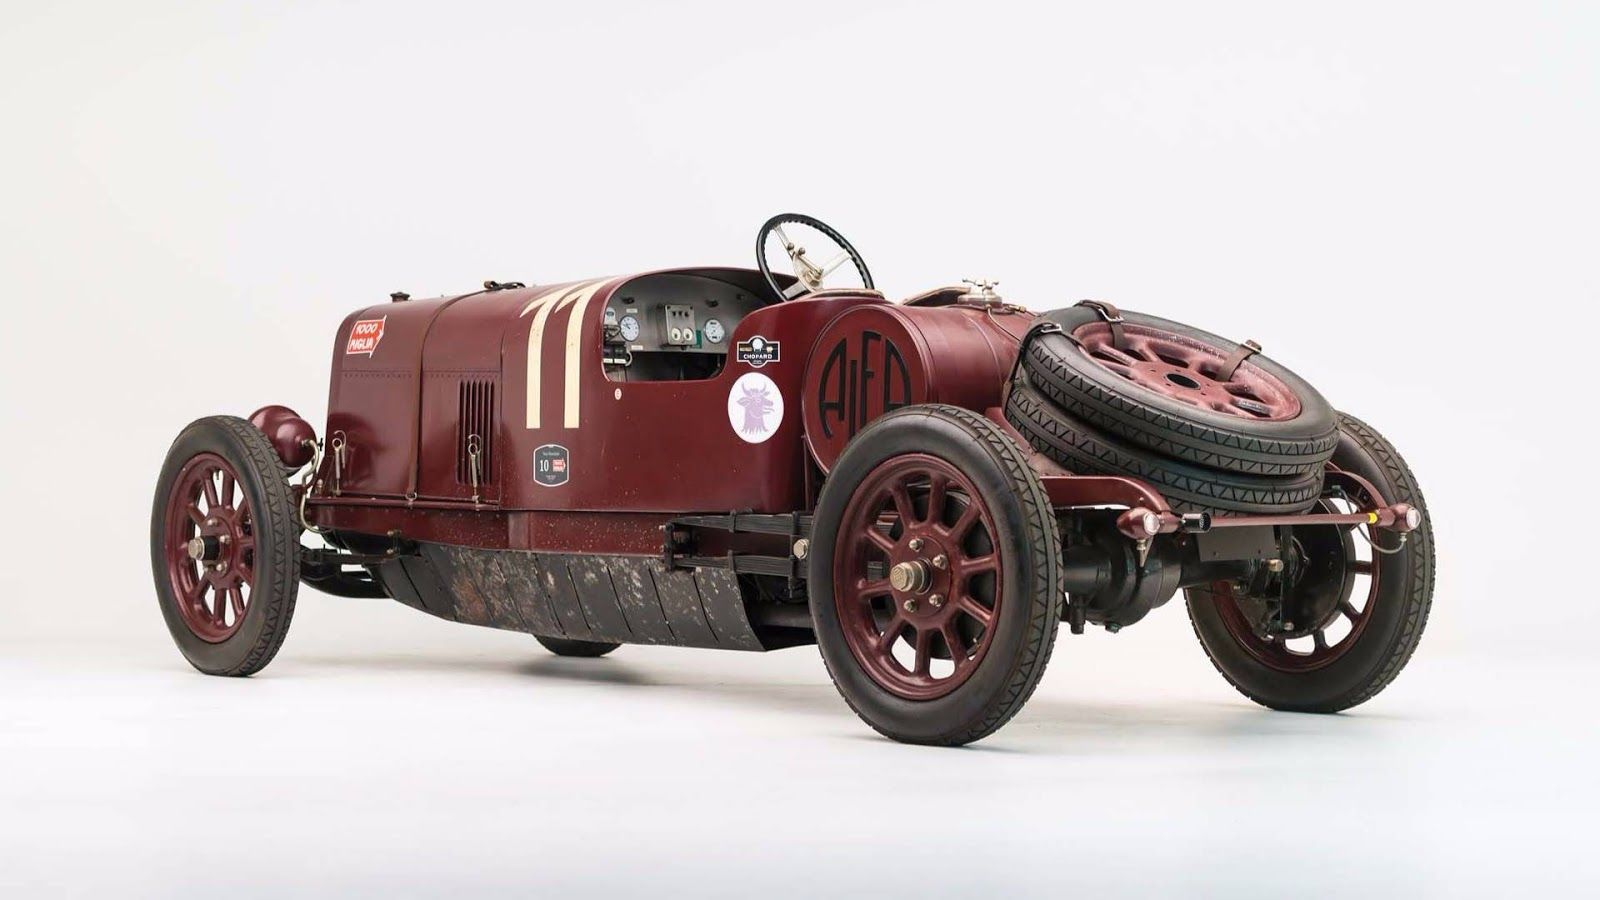 World S First Alfa Romeo Could Sell For 1 5 Million At Auction Carscoops Alfa Romeo Classic Cars Vintage Cars